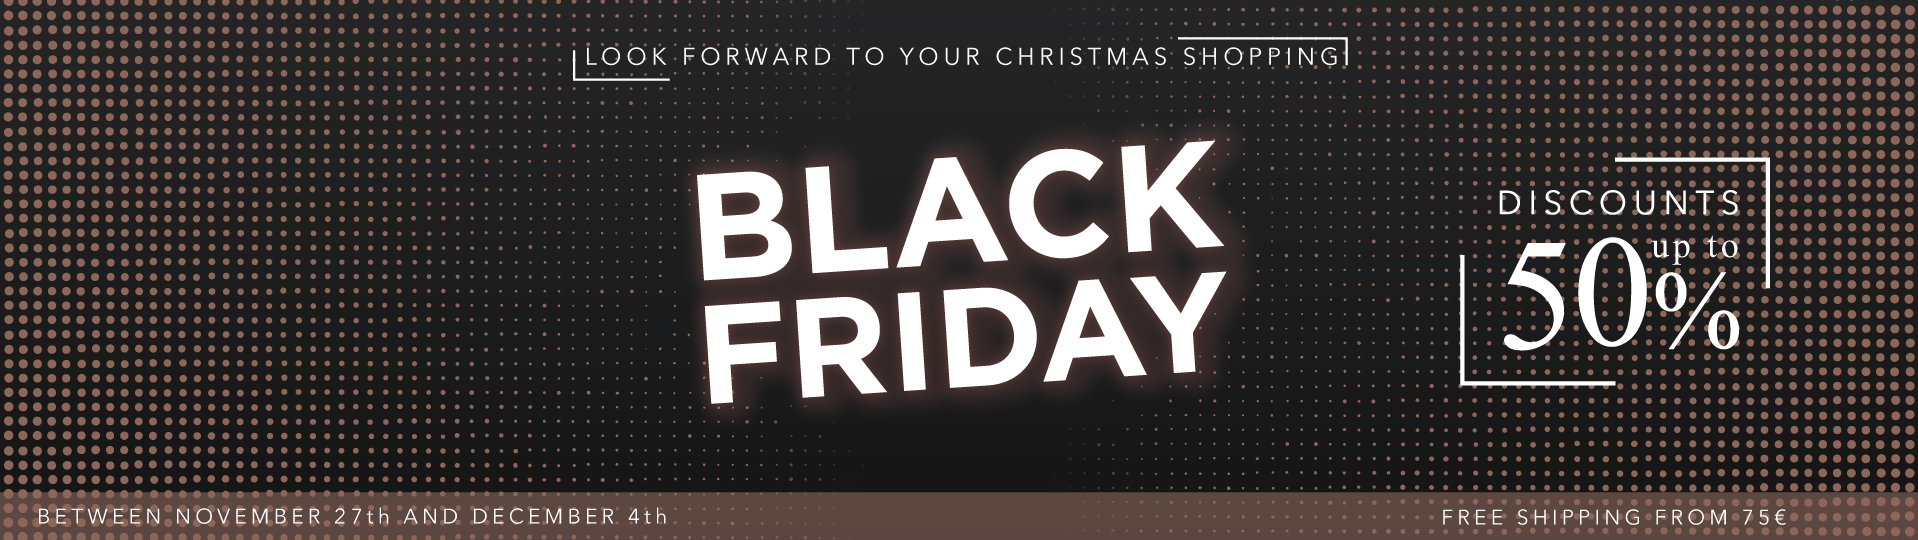 Black Friday - Sales up to 50%